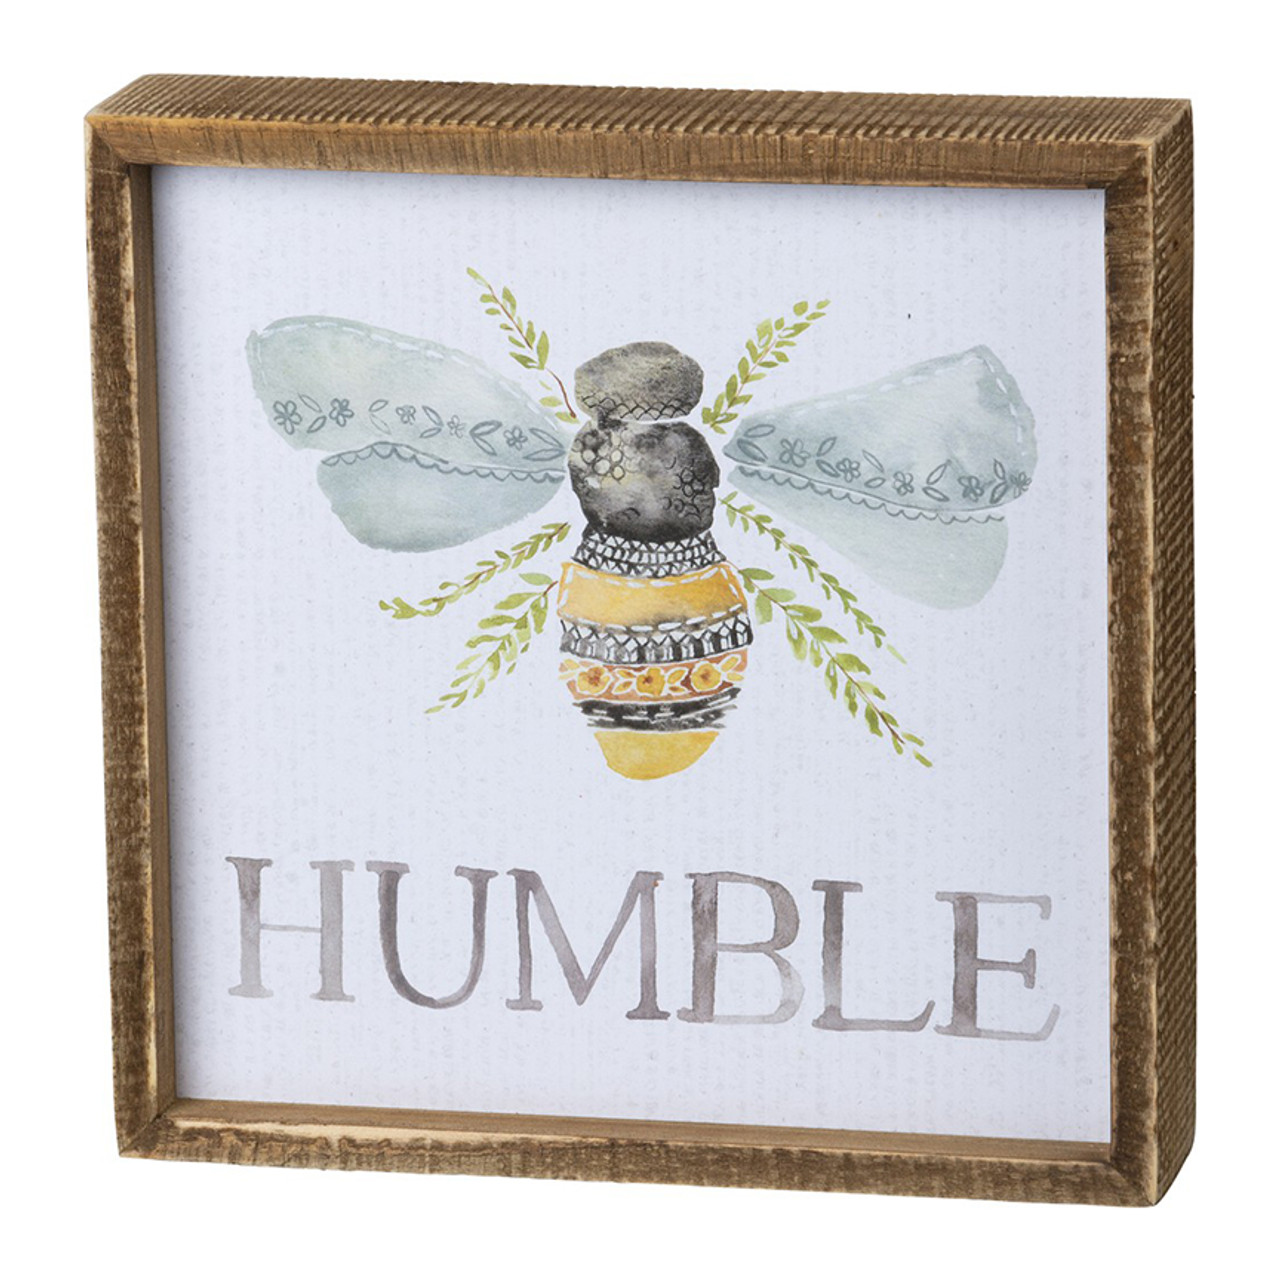 Bee Humble Wooden Inset Box Sign